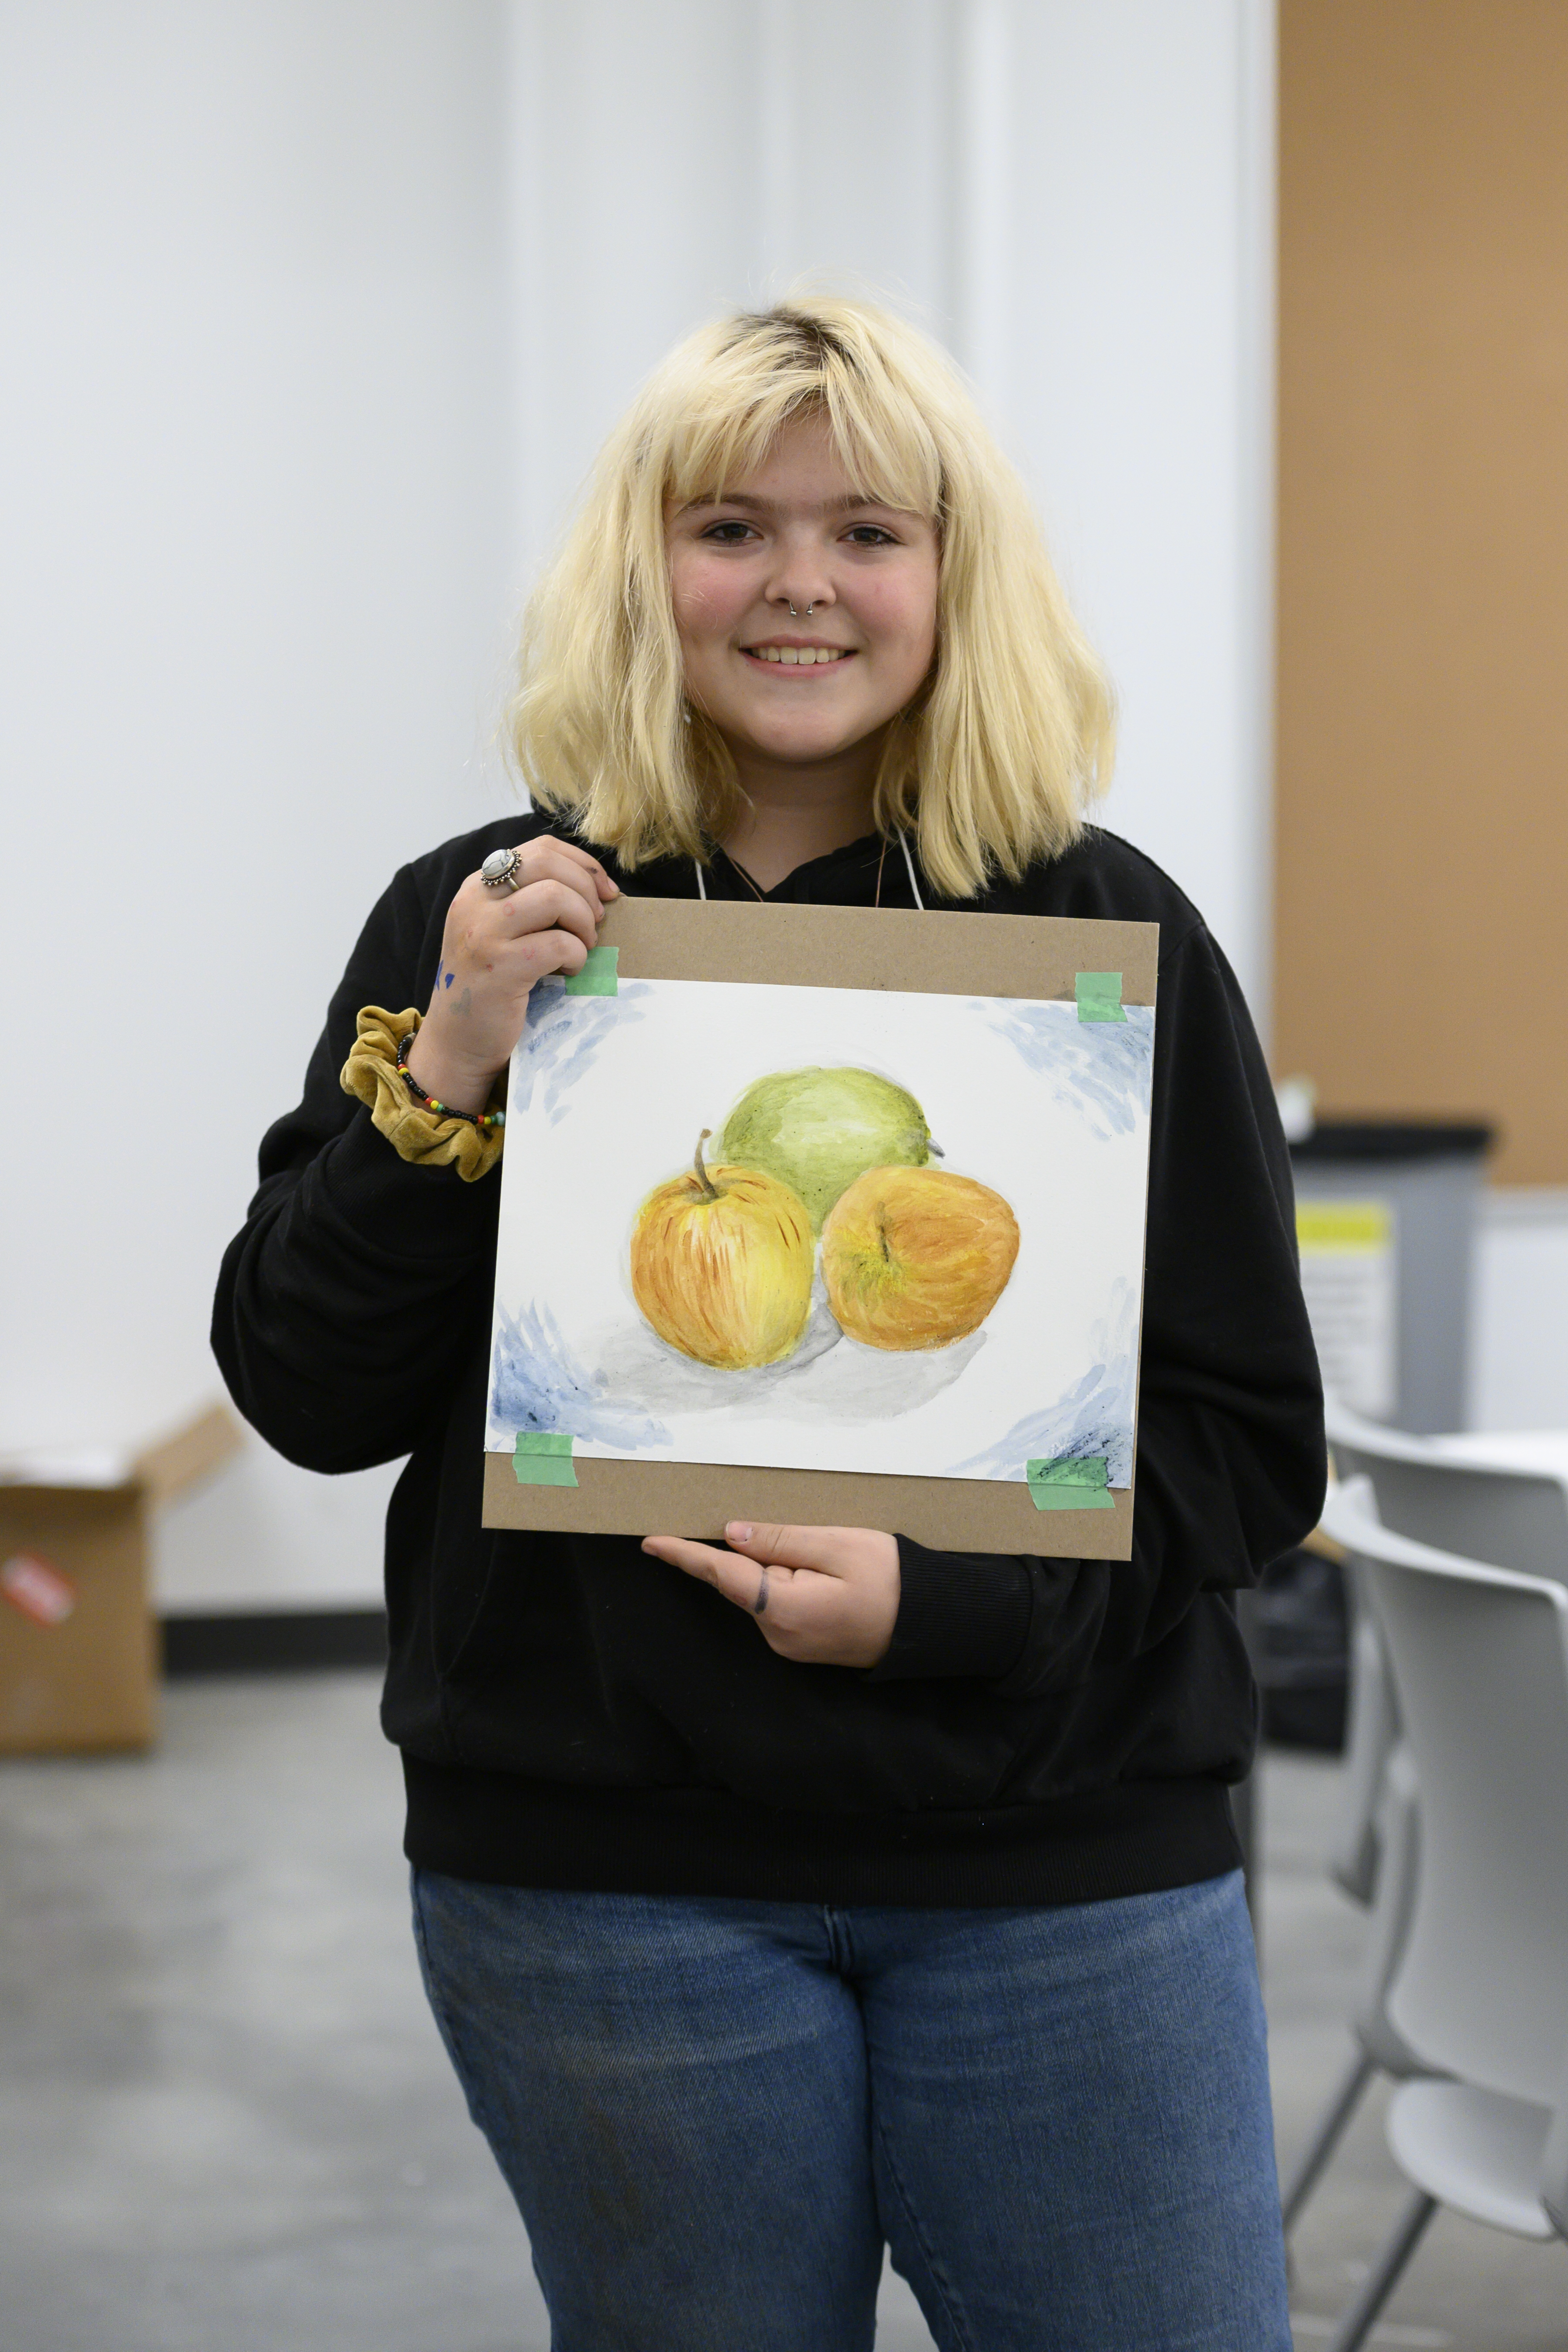 Participant shares painting of apples